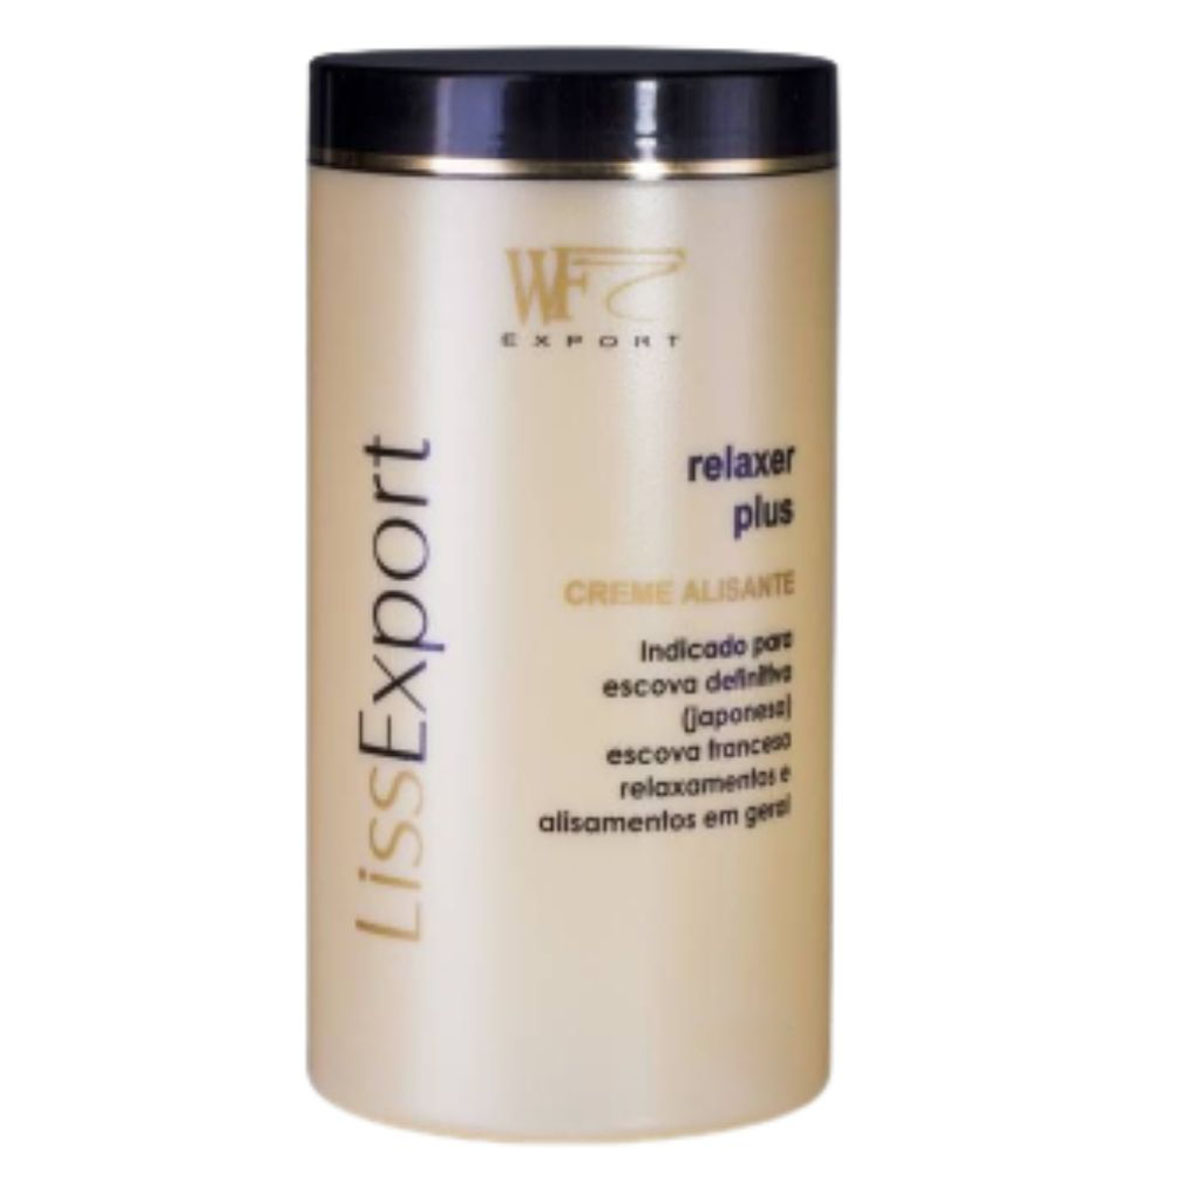 LISS EXPORT - ALISANTE RELAXER PLUS SOFT WF COSMETICOS 1KG